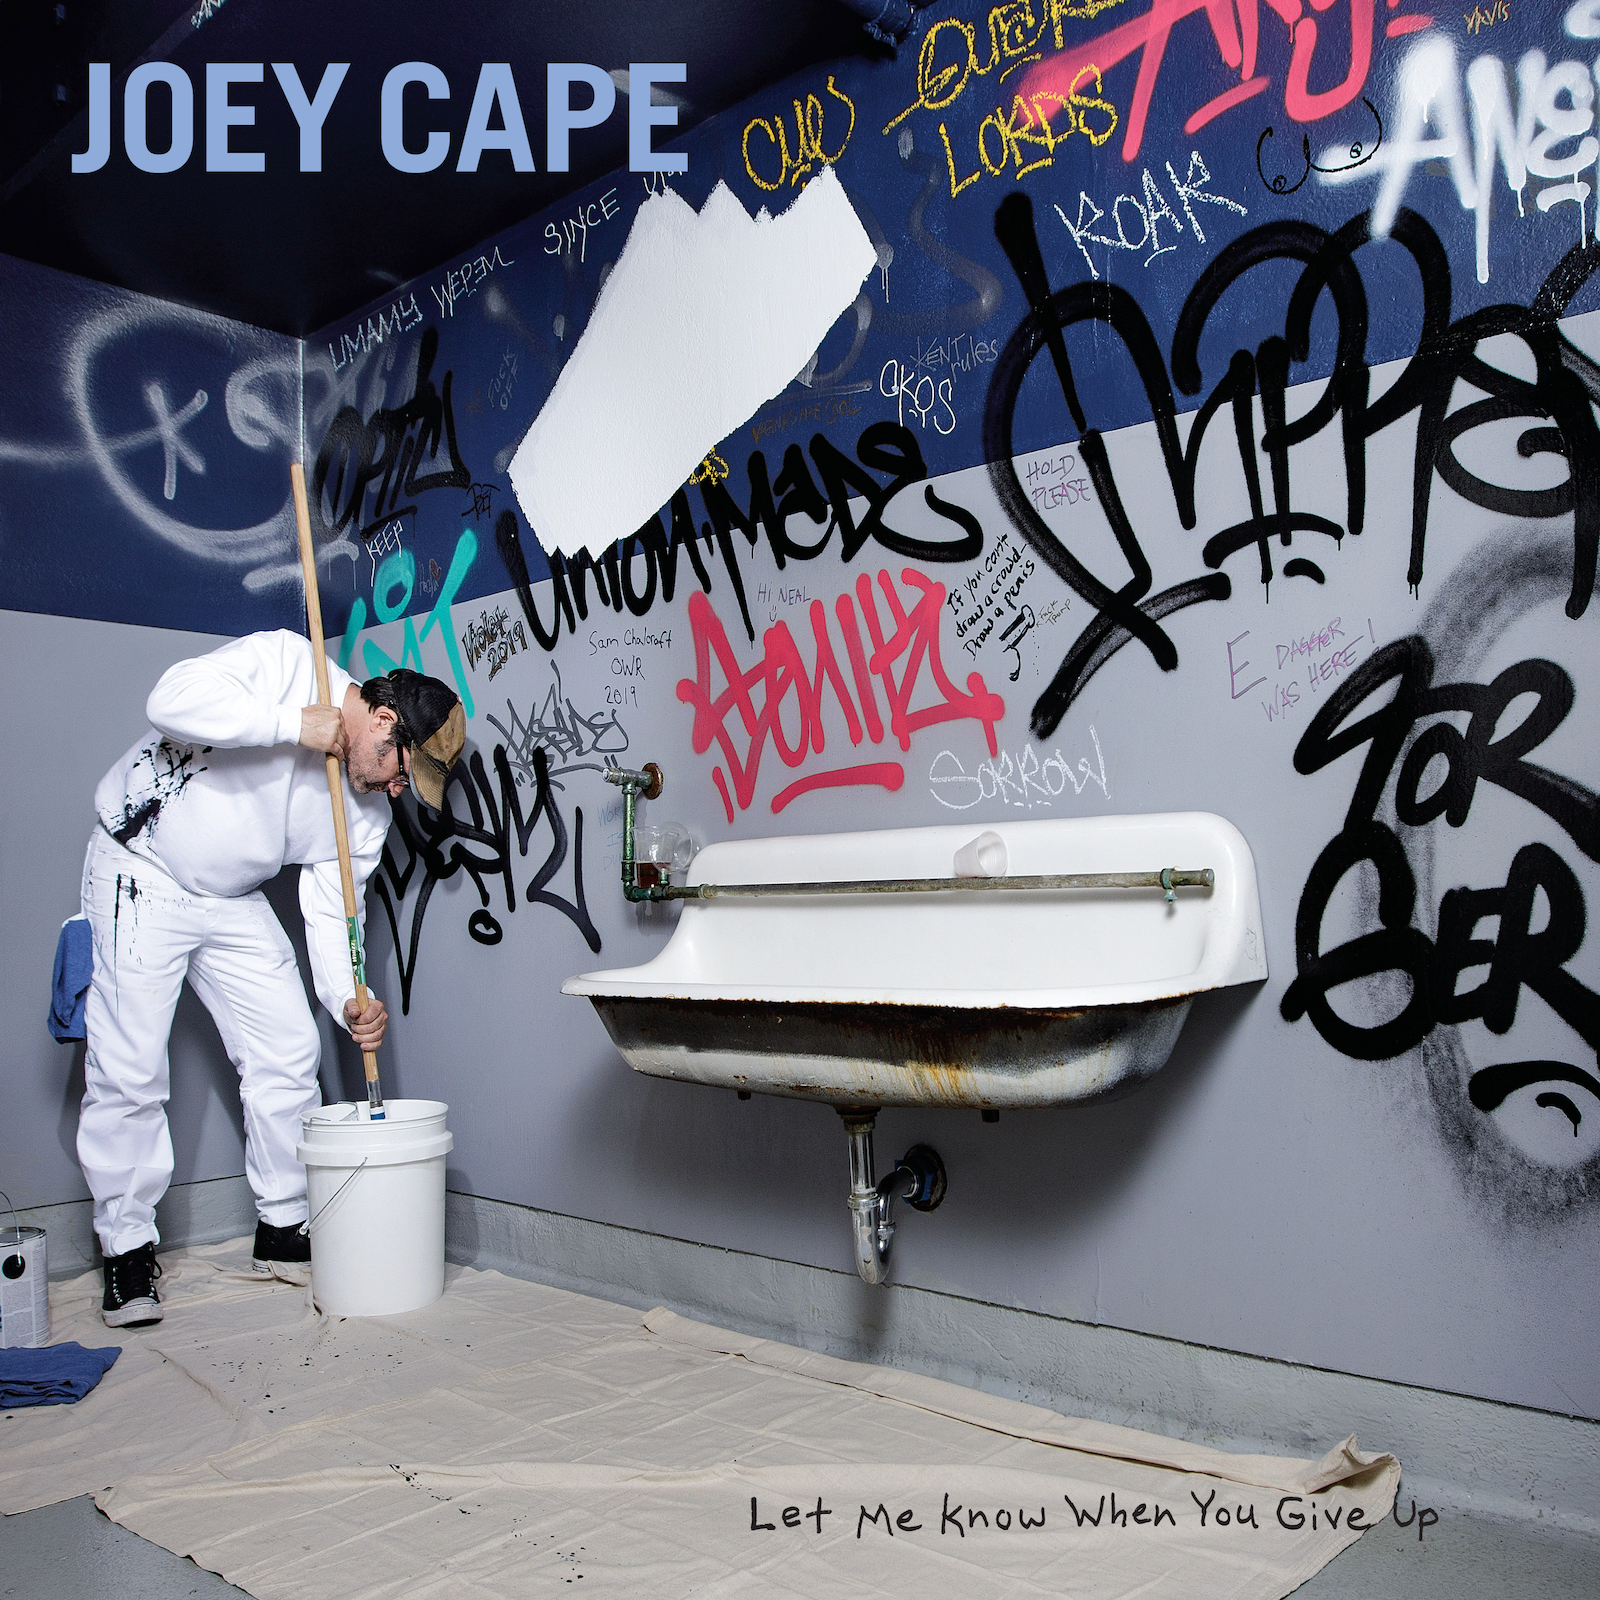 joey-cape-let-me-know-when-you-give-up.jpg